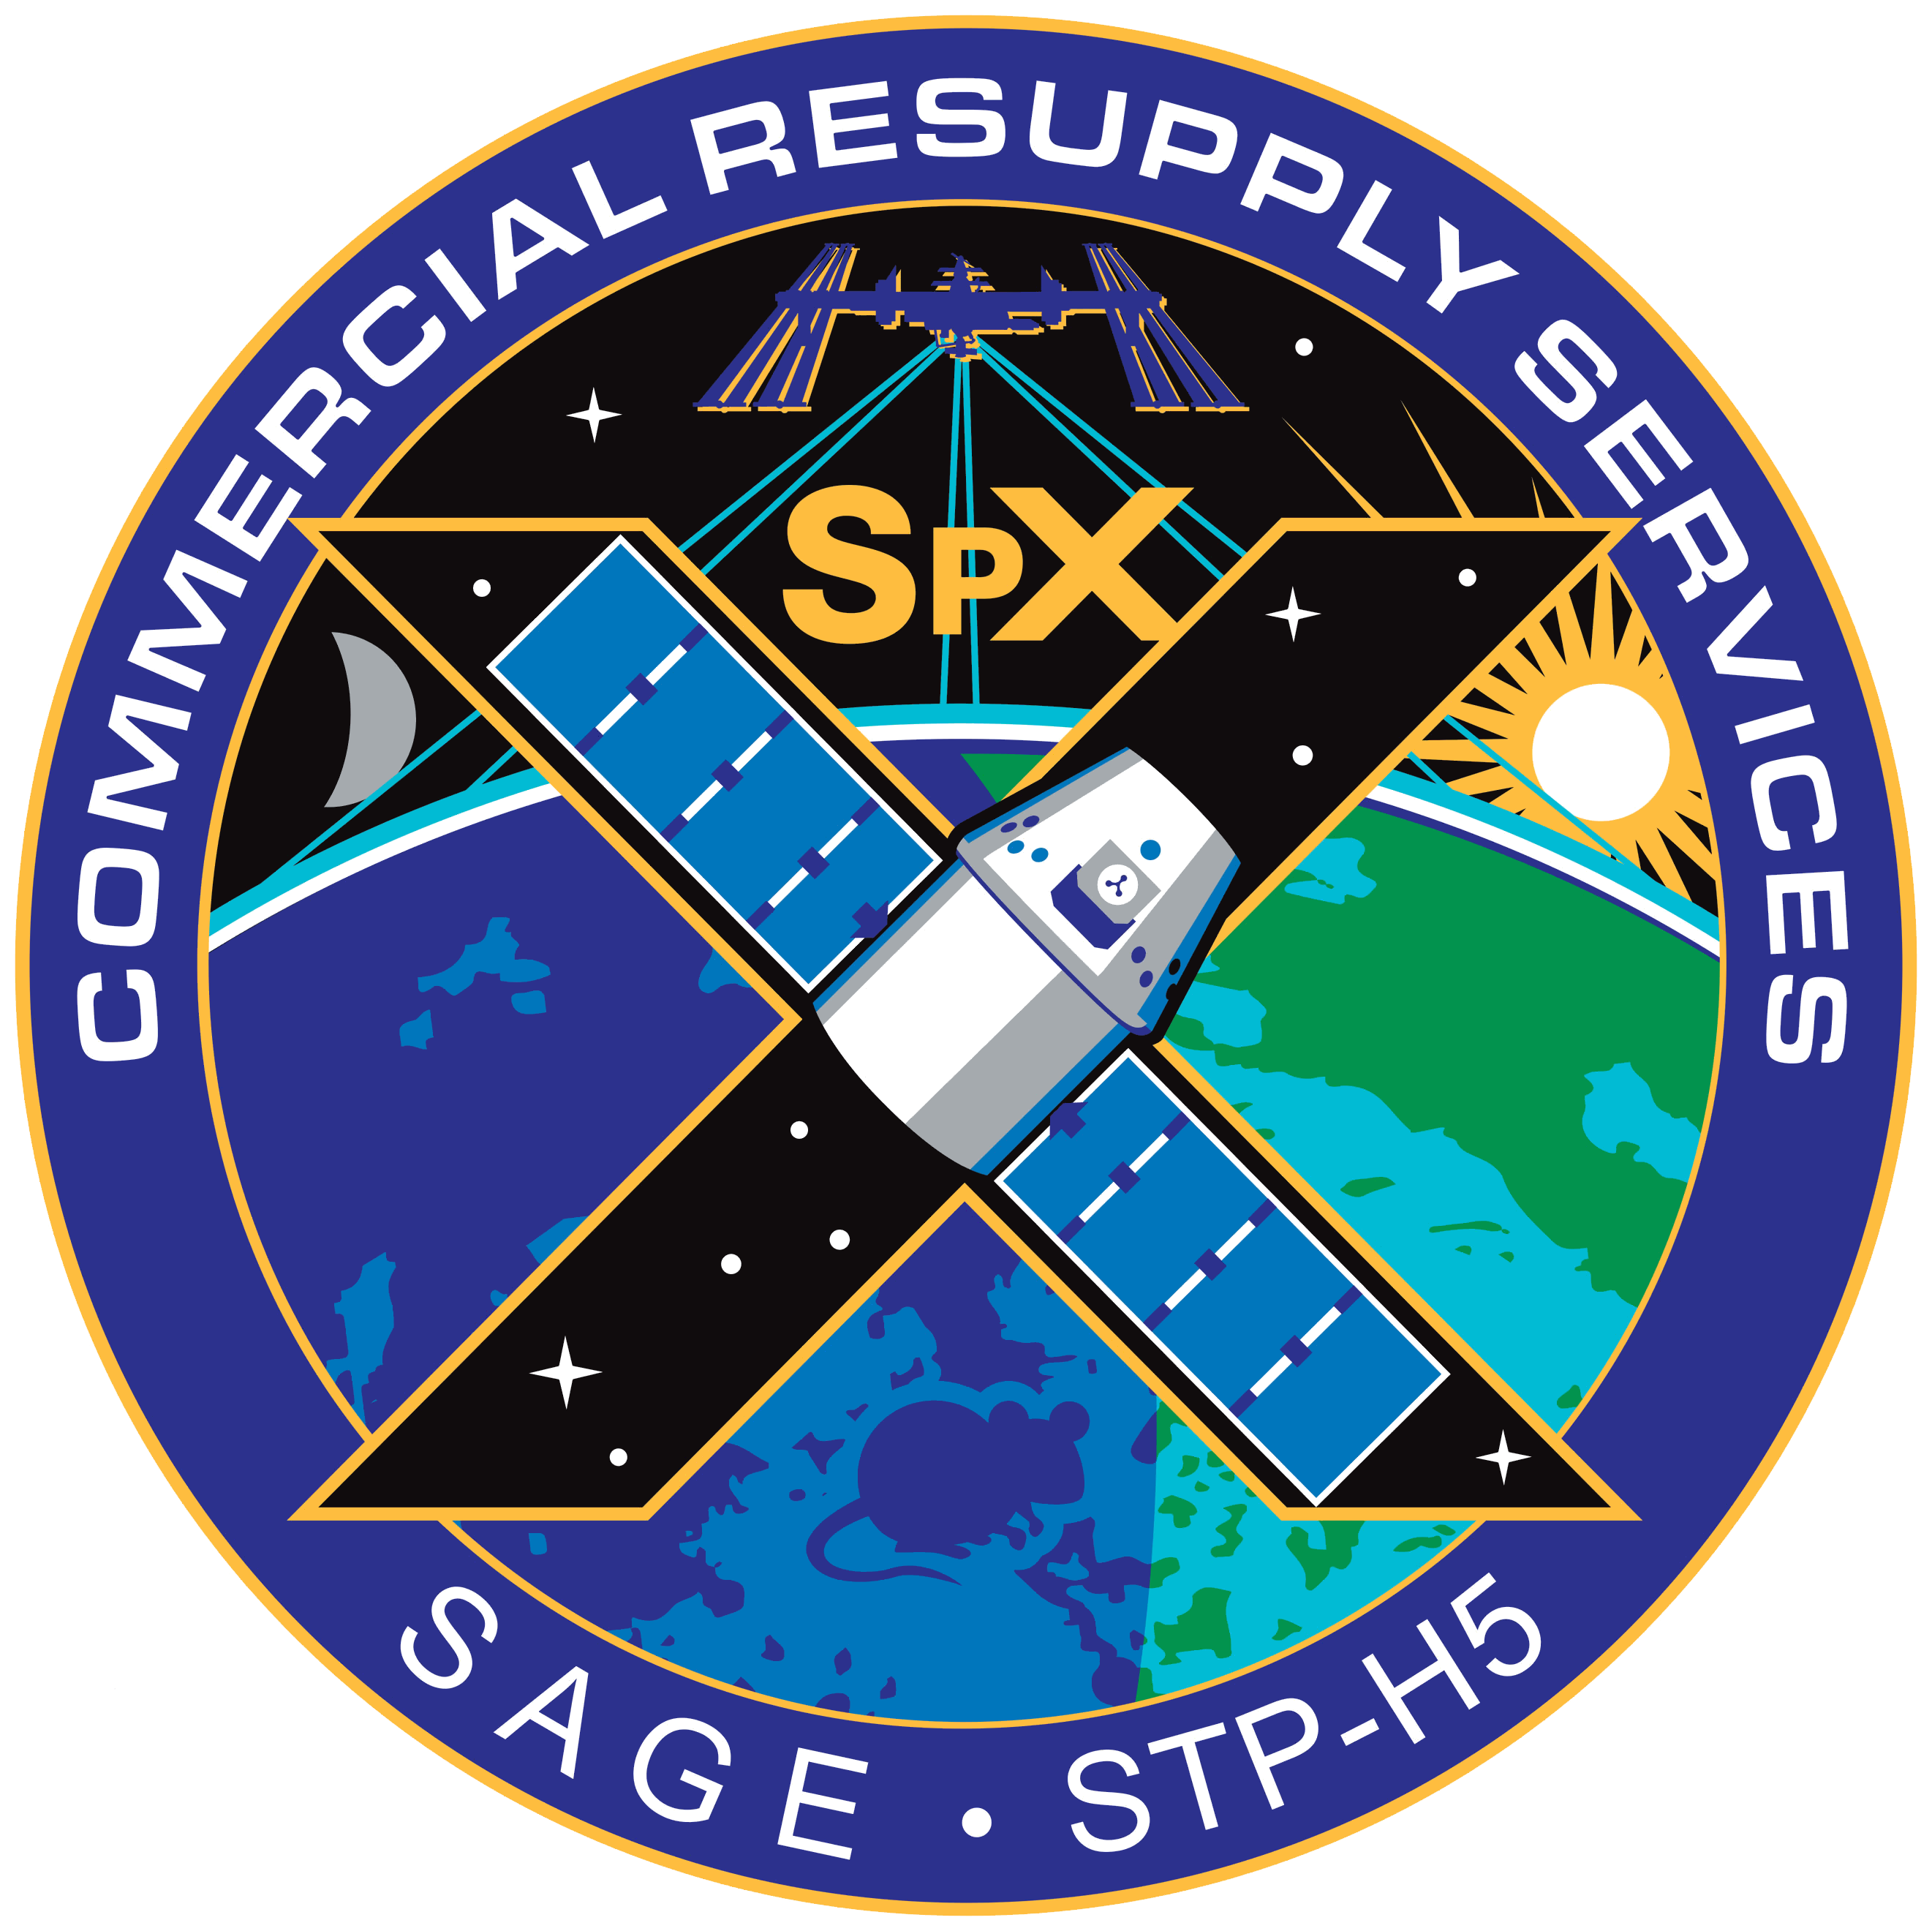 Falcon 9: Dragon CRS-10 ISS resupply - Page 3 - Science ...